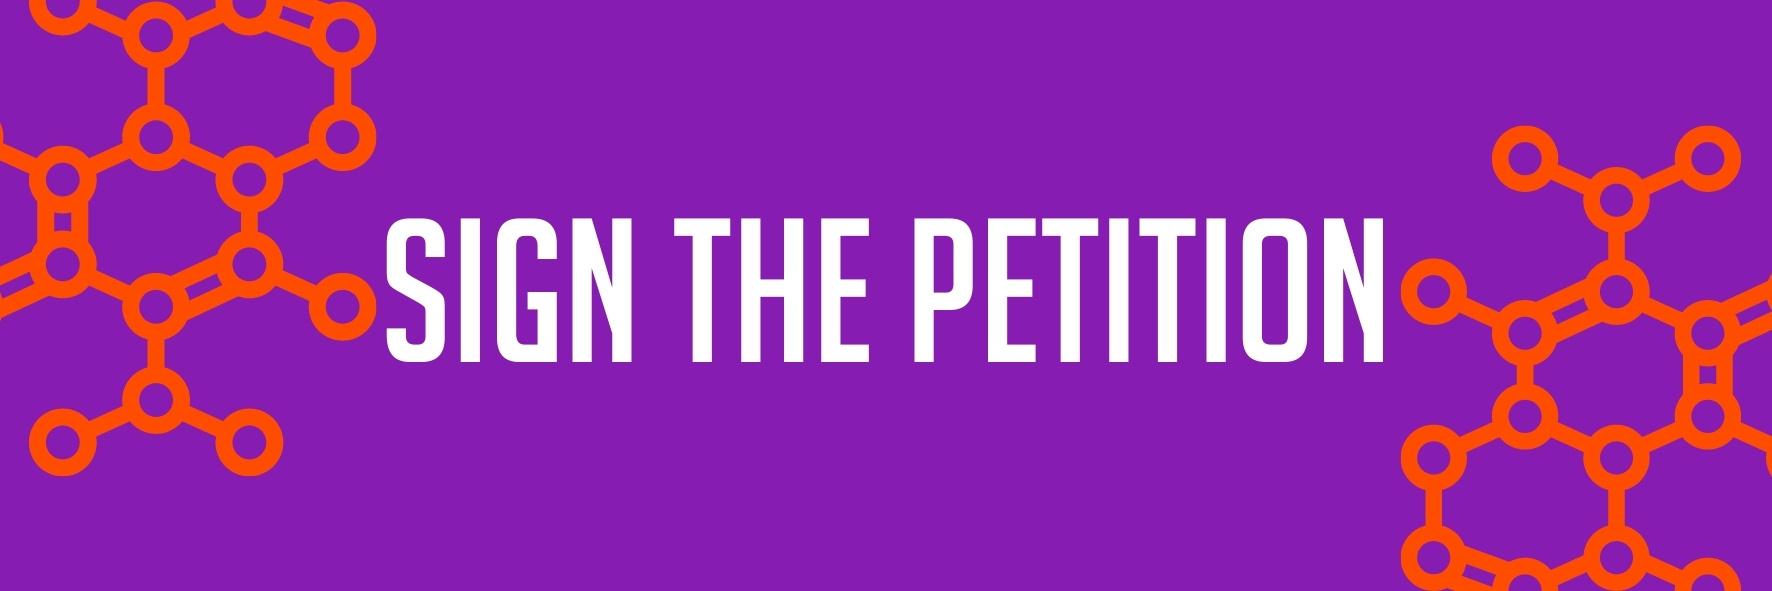 Sign the petition to fight the ban